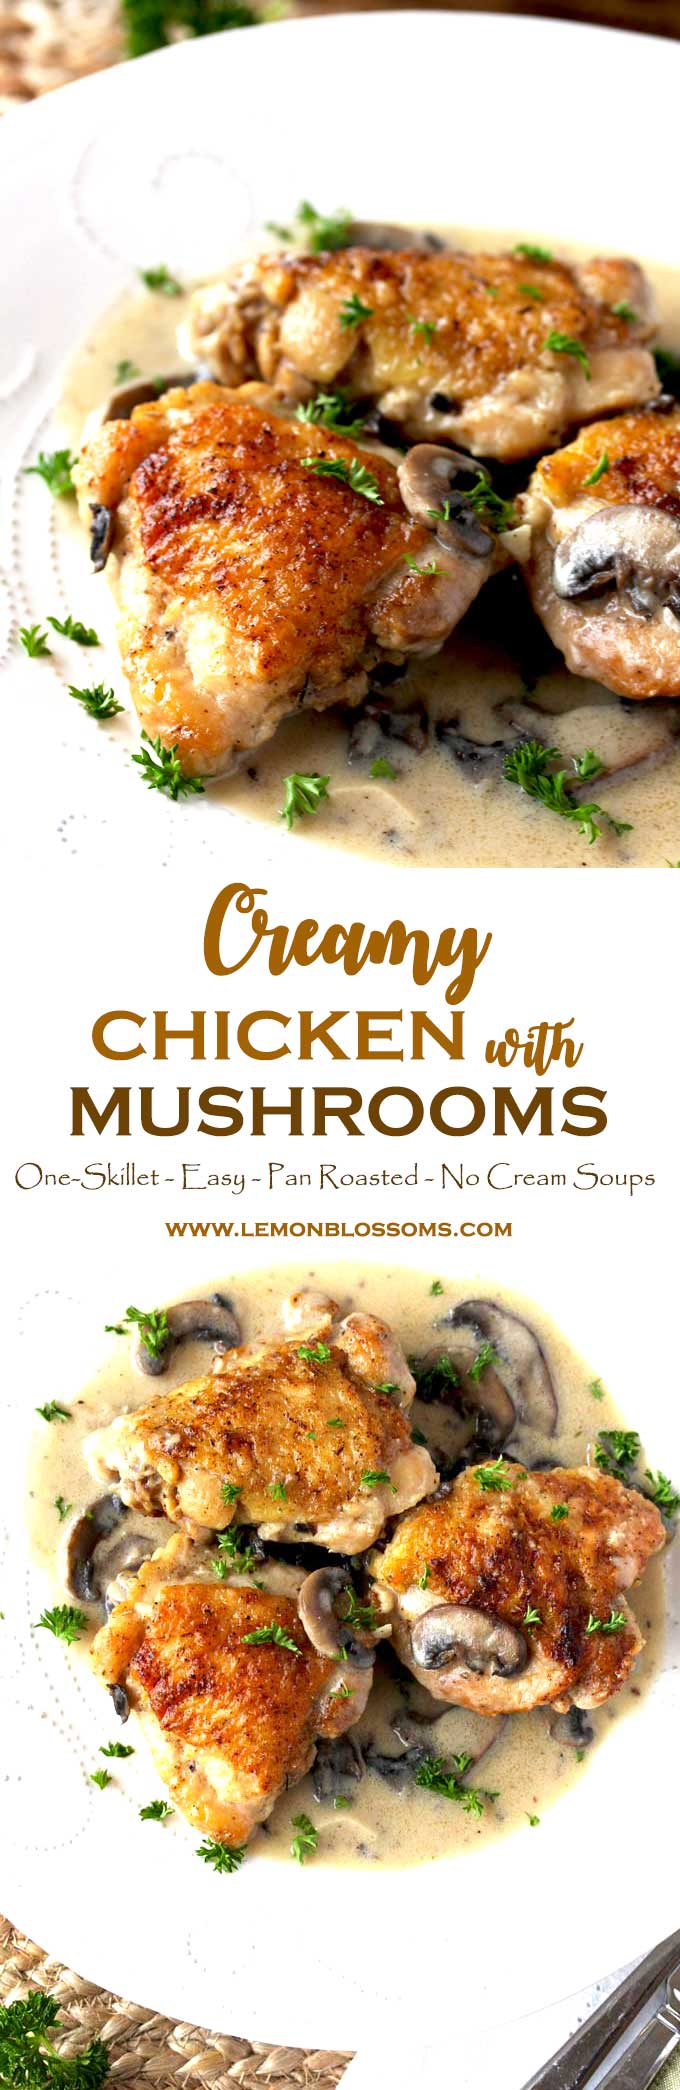 This Creamy Chicken and Mushrooms recipe is easy and delicious. Bone-in chicken thighs are pan roasted and smothered in the most delectable creamy mushroom sauce made from scratch (no cream of mushroom soup here!). A simple yet elegant meal perfect for company but also great any day of the week! #chickendinner #easychickenrecipe #chickenandmushrooms #creamymushrooms #oneskillet #chickenrecipe